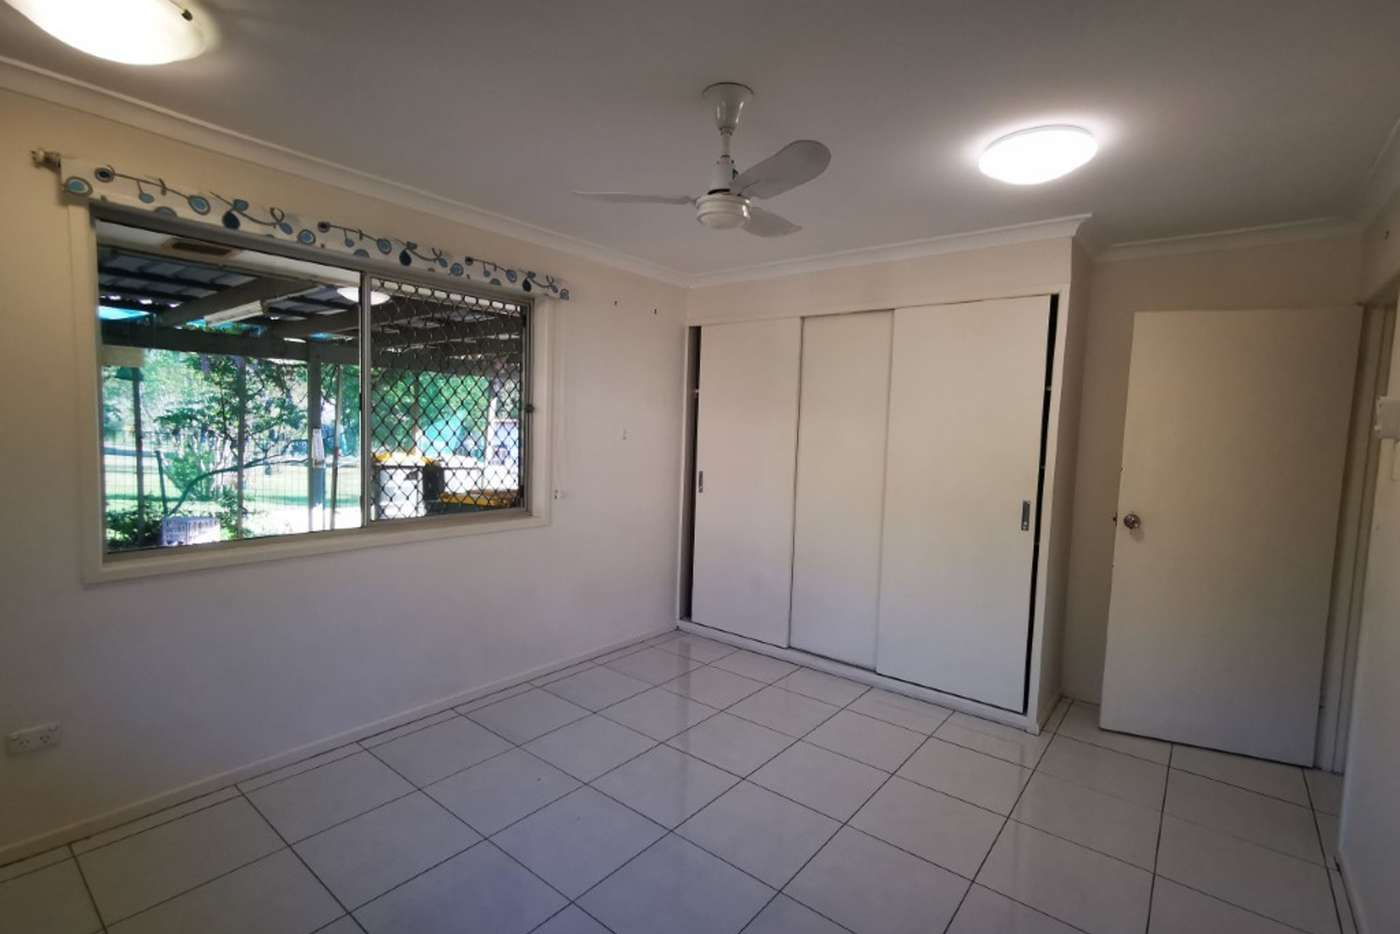 Sixth view of Homely house listing, 70 Keats street, Sunnybank QLD 4109